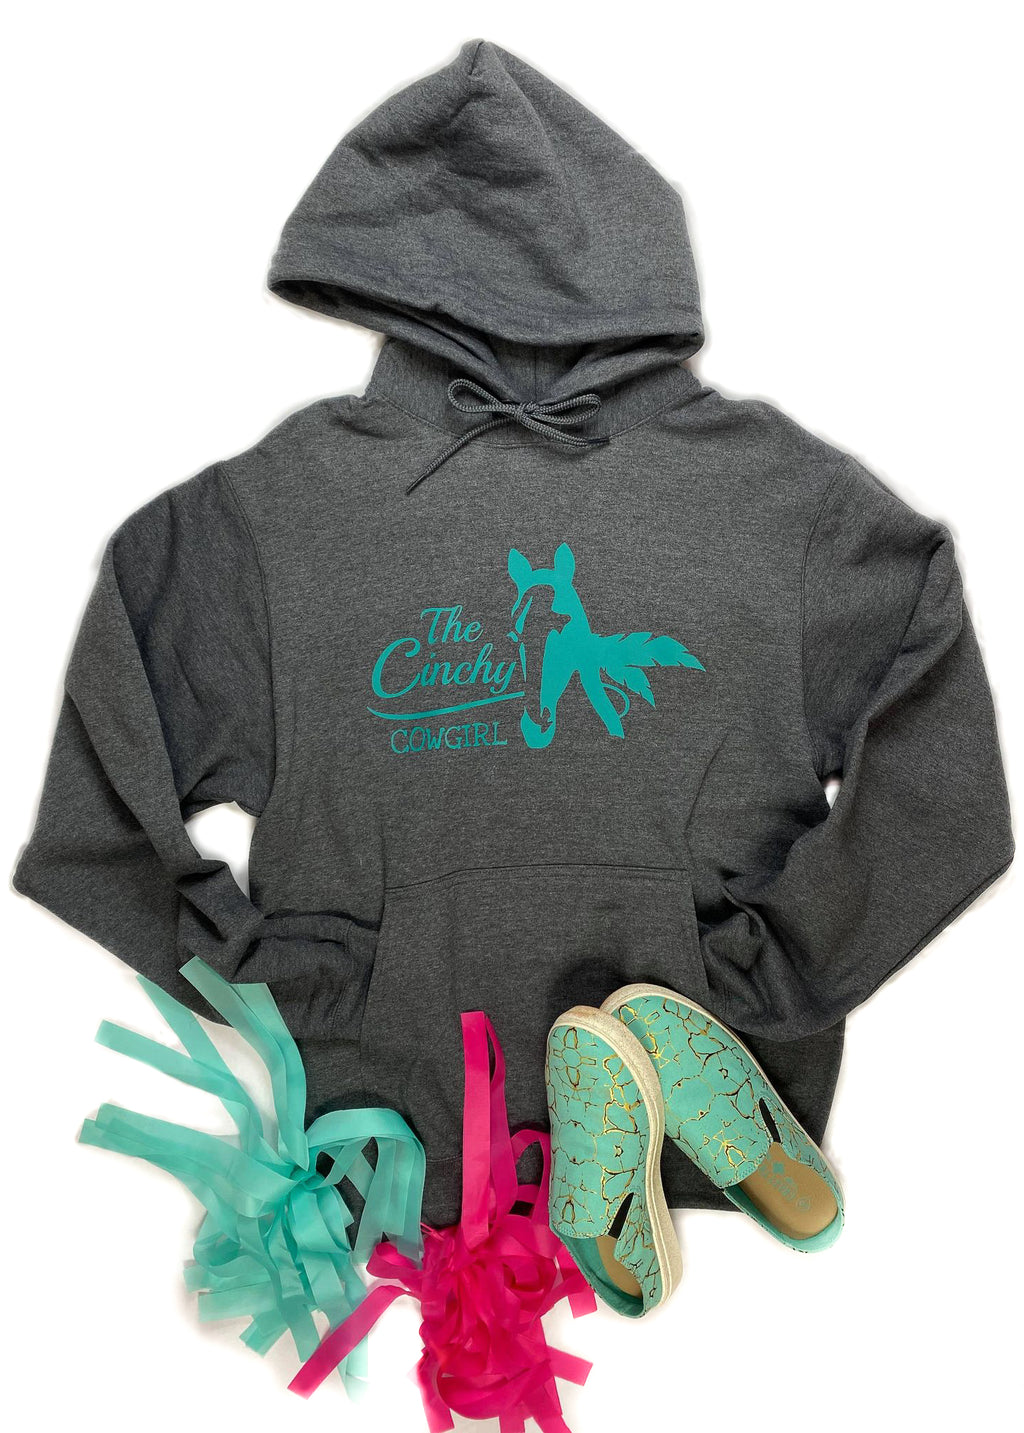 Dark Grey unisex hoodie with The Cinchy Cowgirl and horse outline in teal ink laid flat on white surface